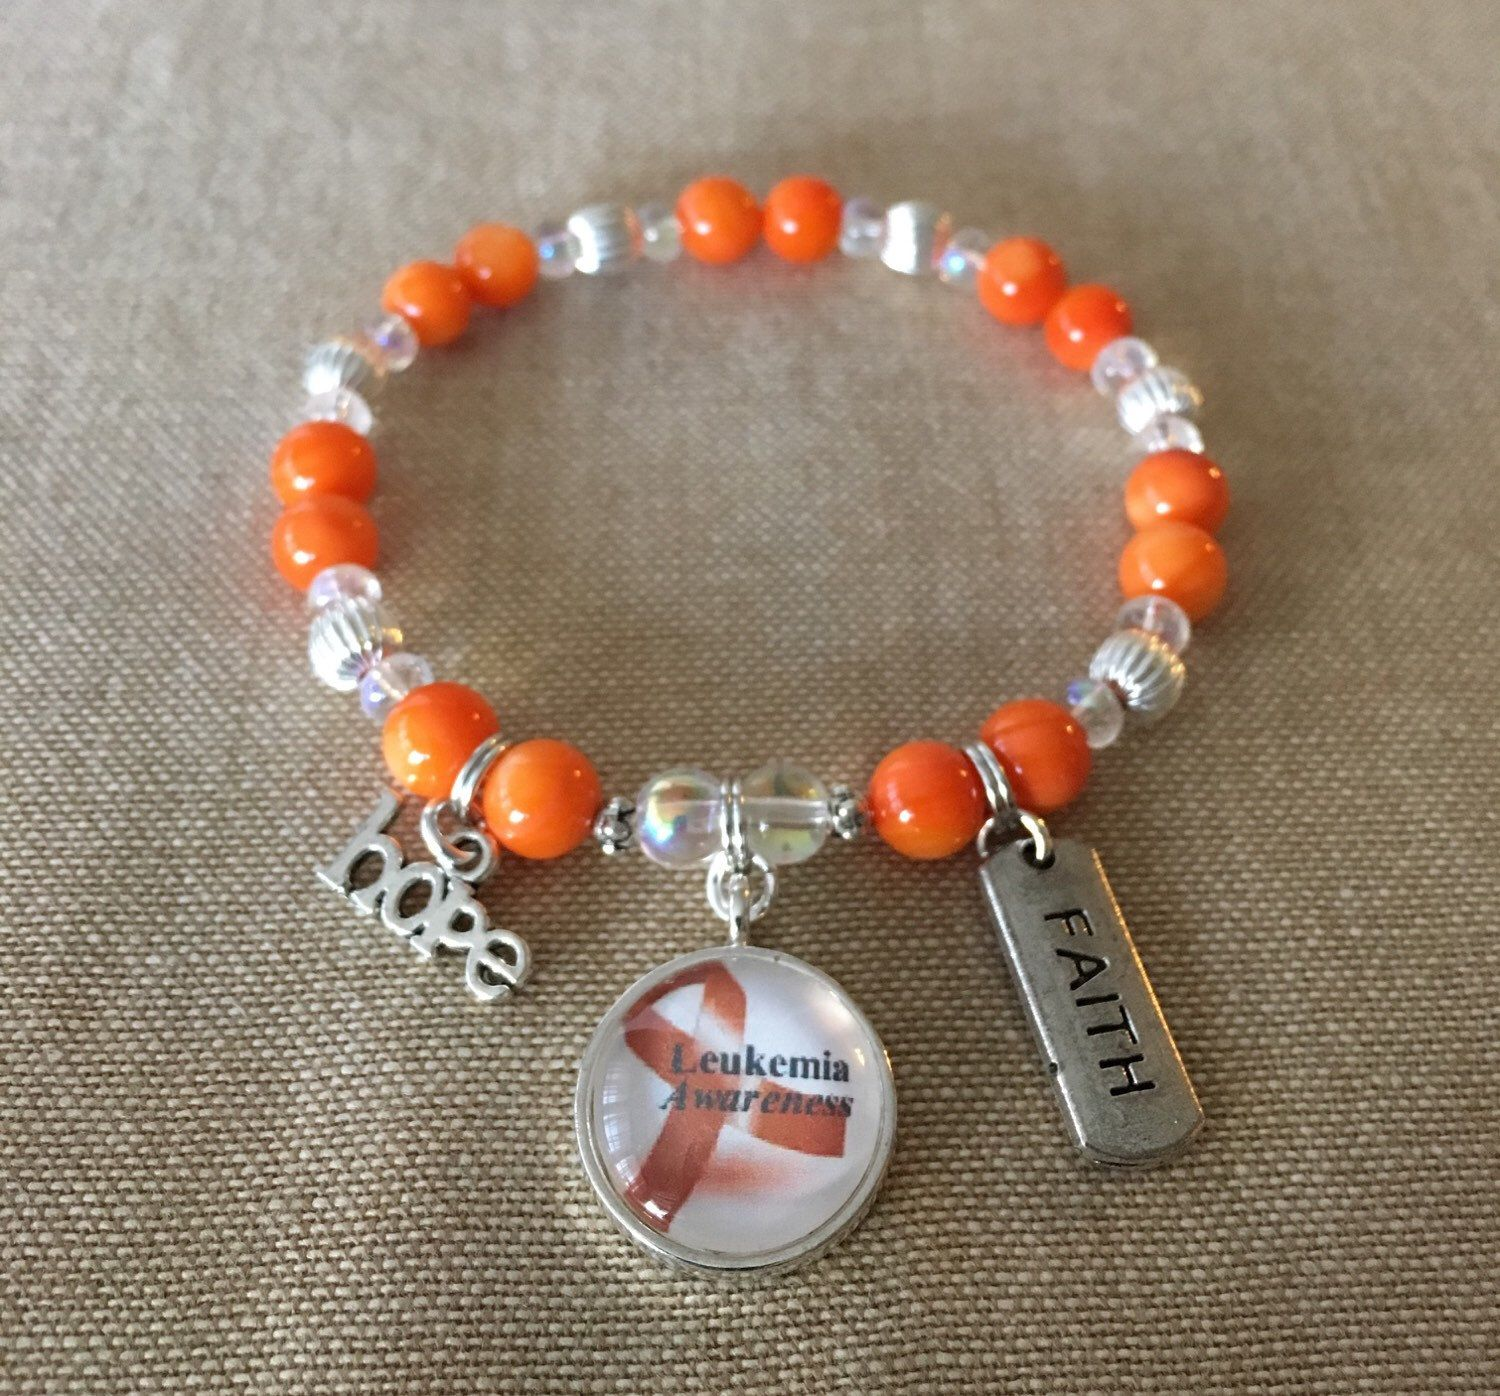 cancer multiple necklace pin leukemia glass awareness bracelet sclerosis kidney charm ribbon orange heart